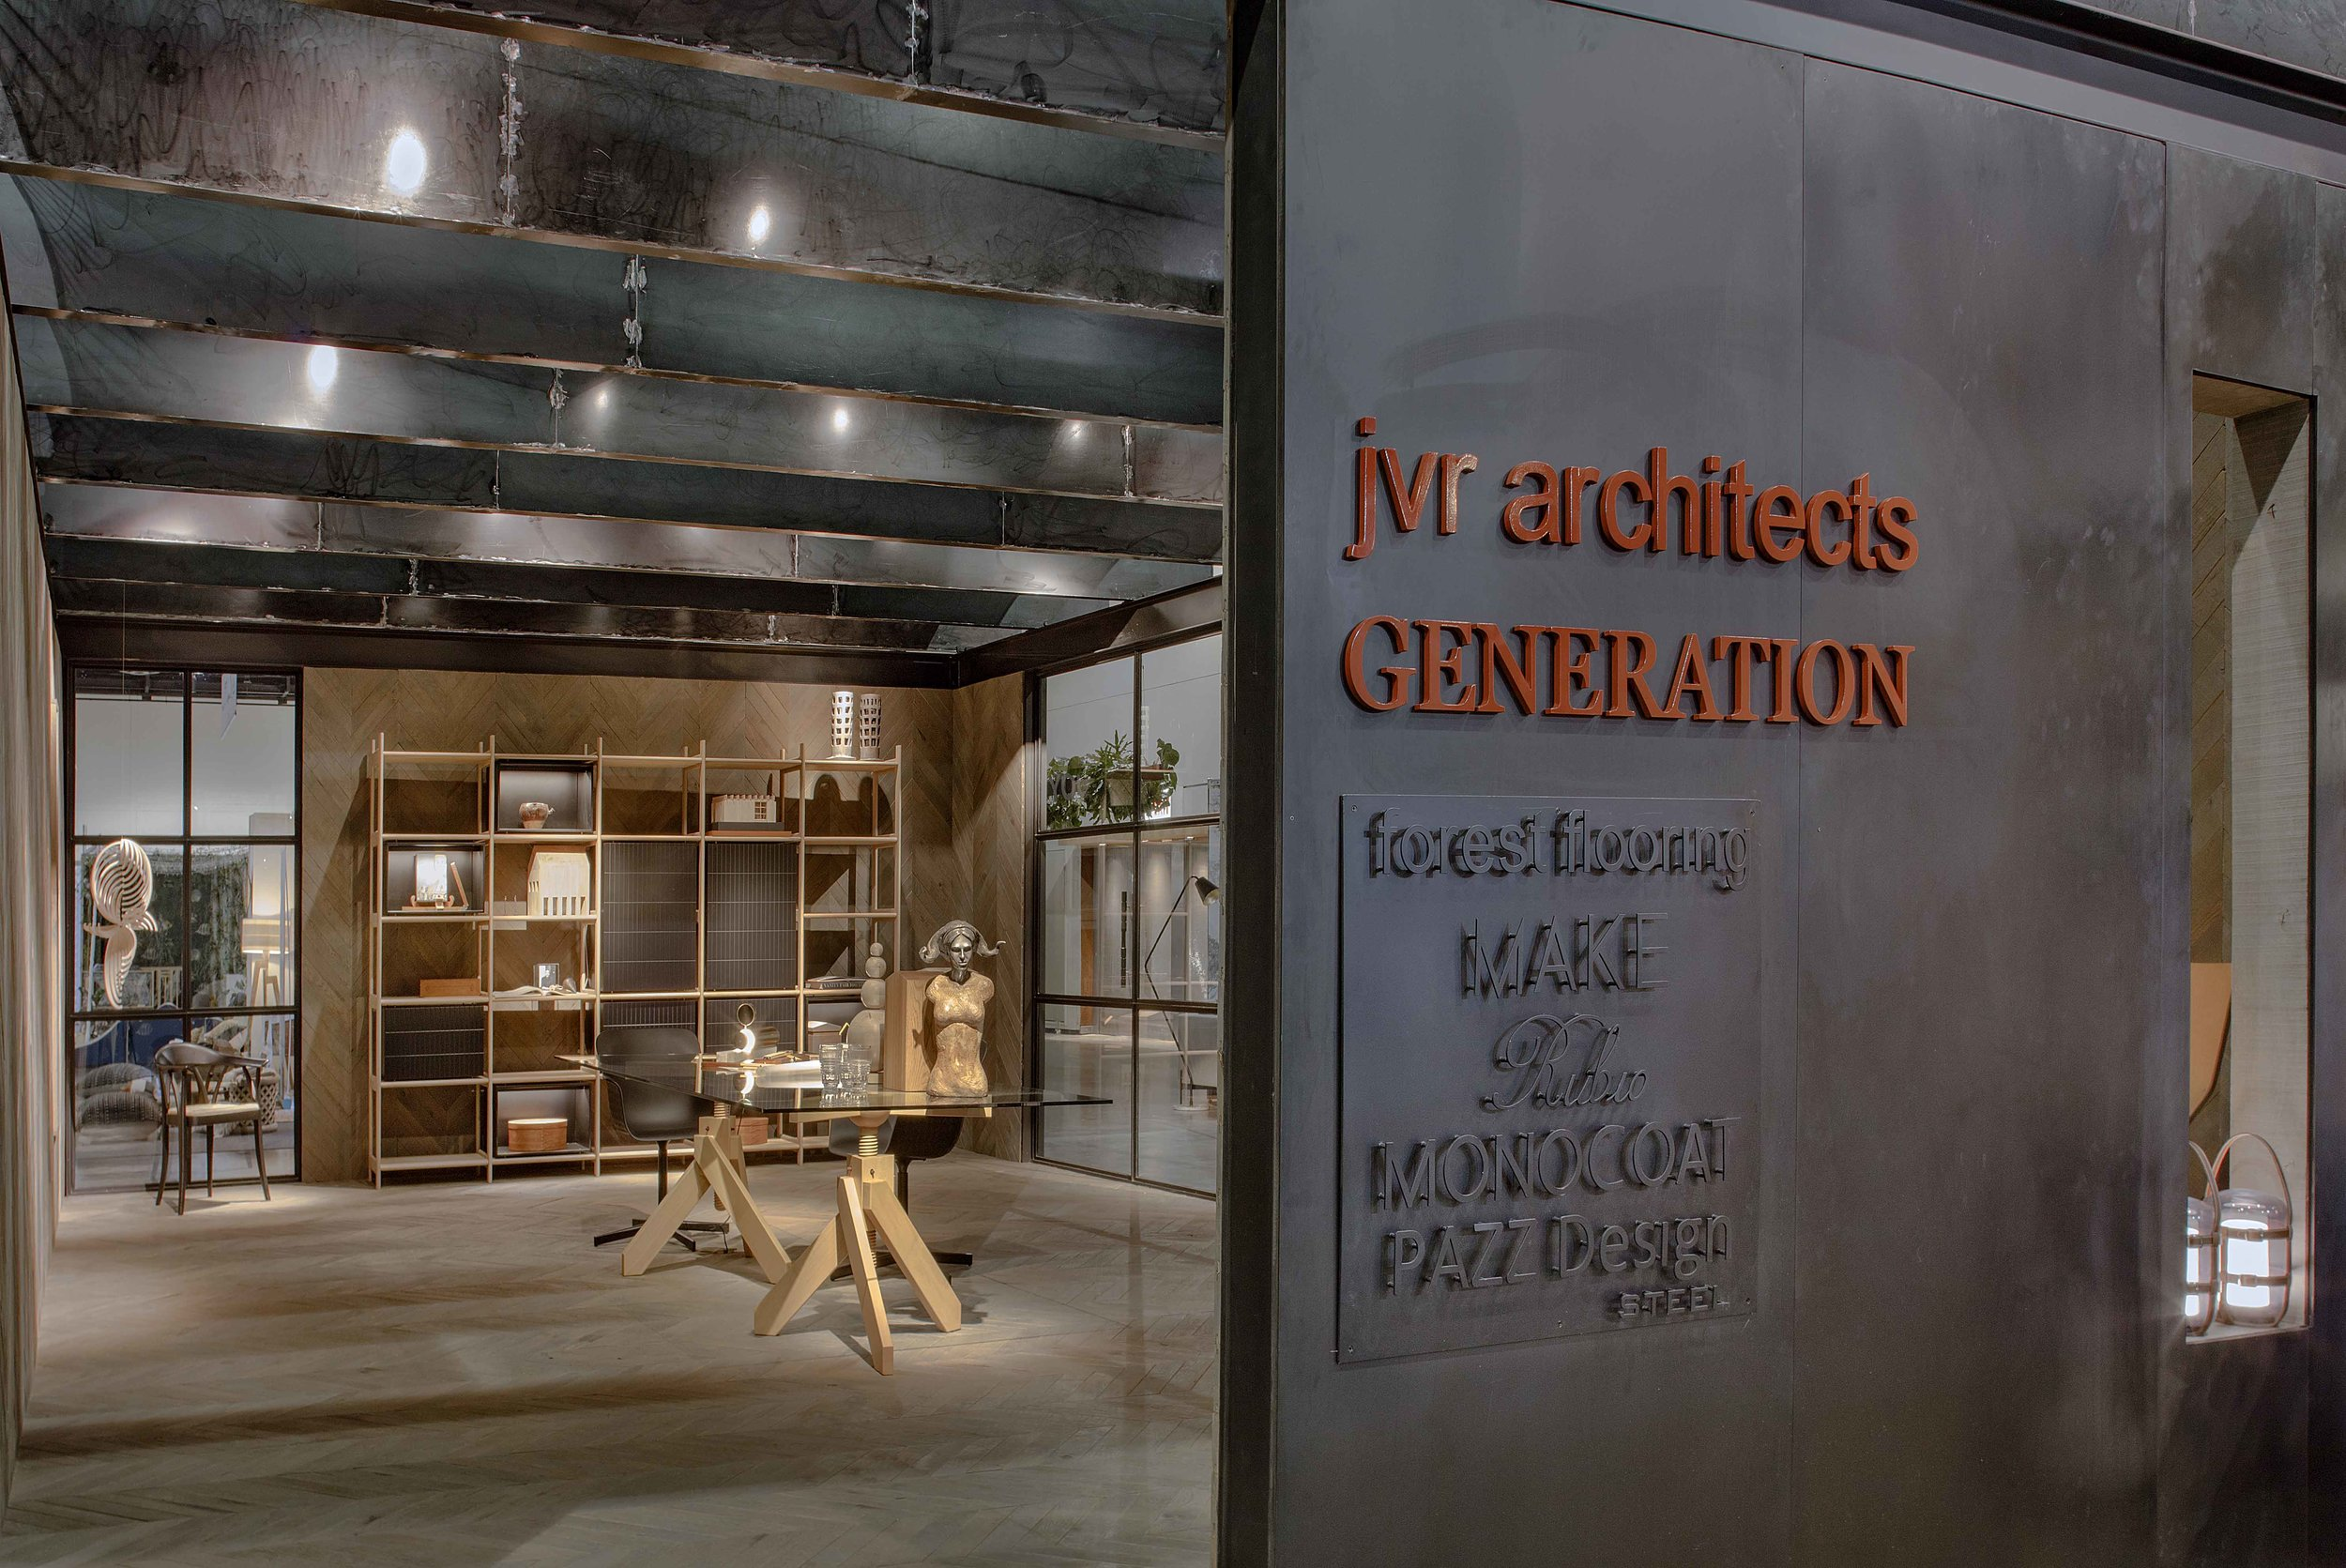 JVR Architects Rooms on View 14 05 2017_3942.jpg